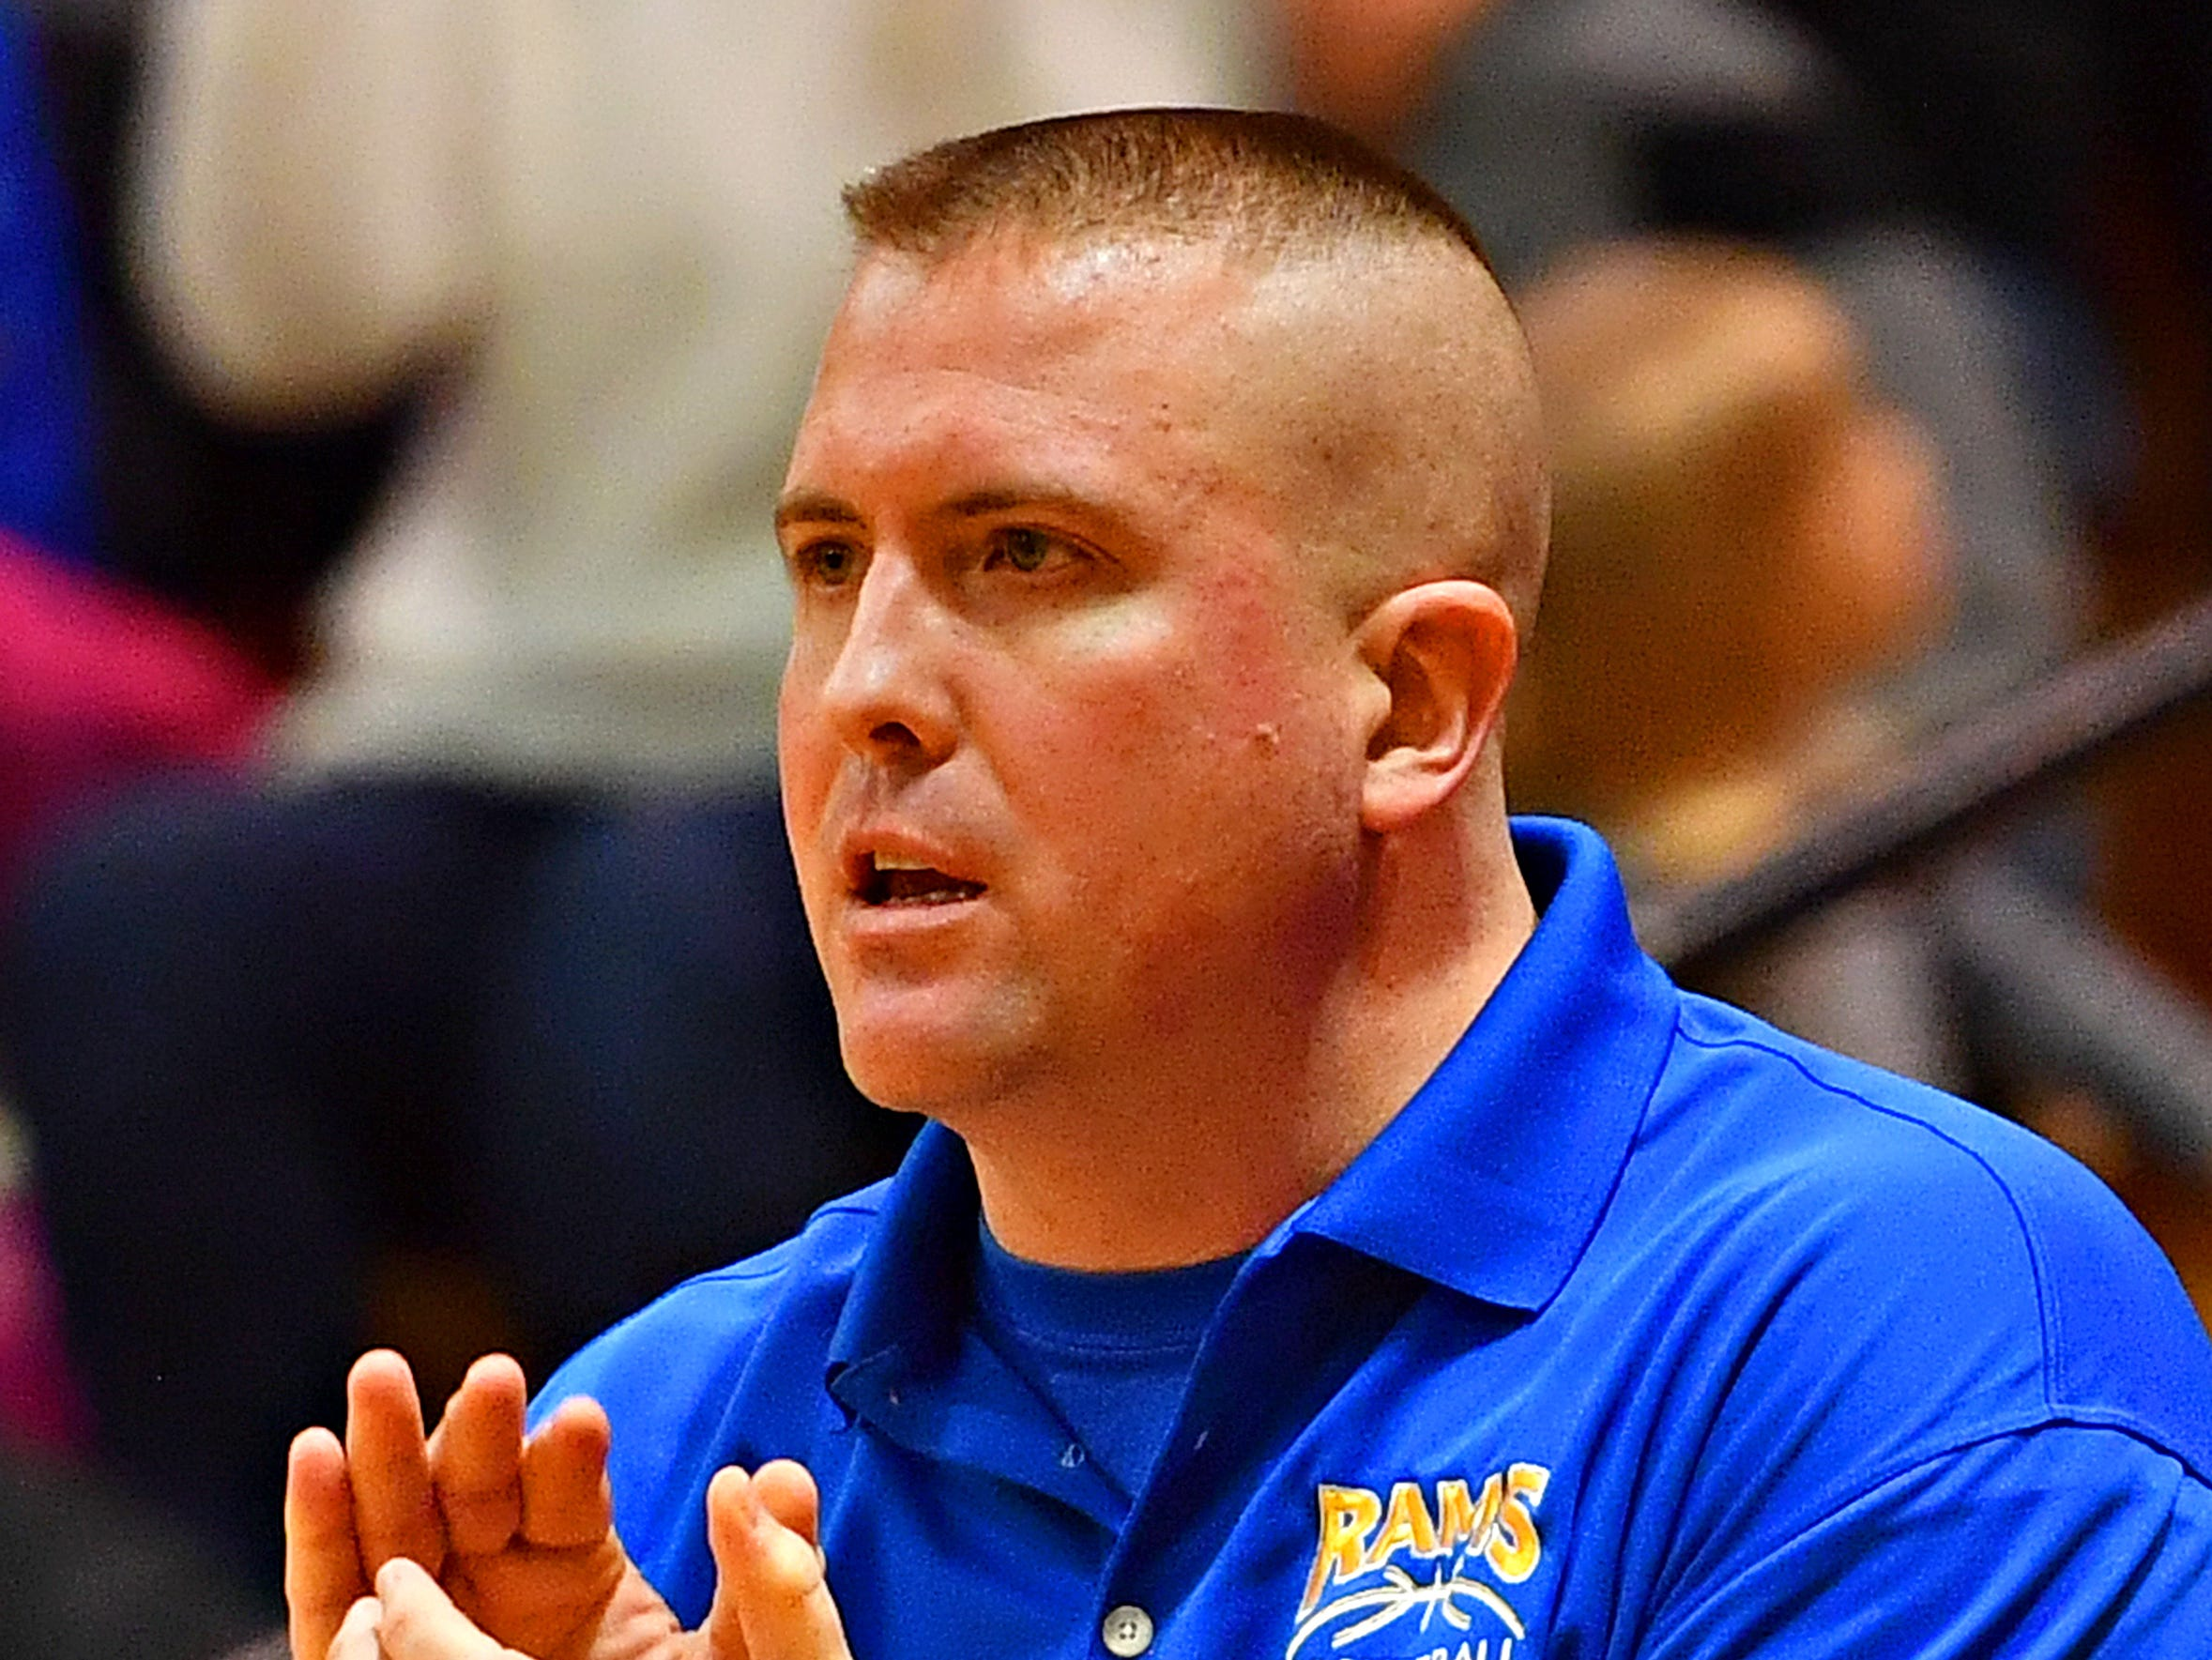 Kennard-Dale Head Coach Aaron Eaton during PIAA Class 4-A girl's basketball second round action against Mifflinburg at Milton Hershey High School in Hershey, Wednesday, March 13, 2019. Mifflinburg would win the game 51-45. Dawn J. Sagert photo